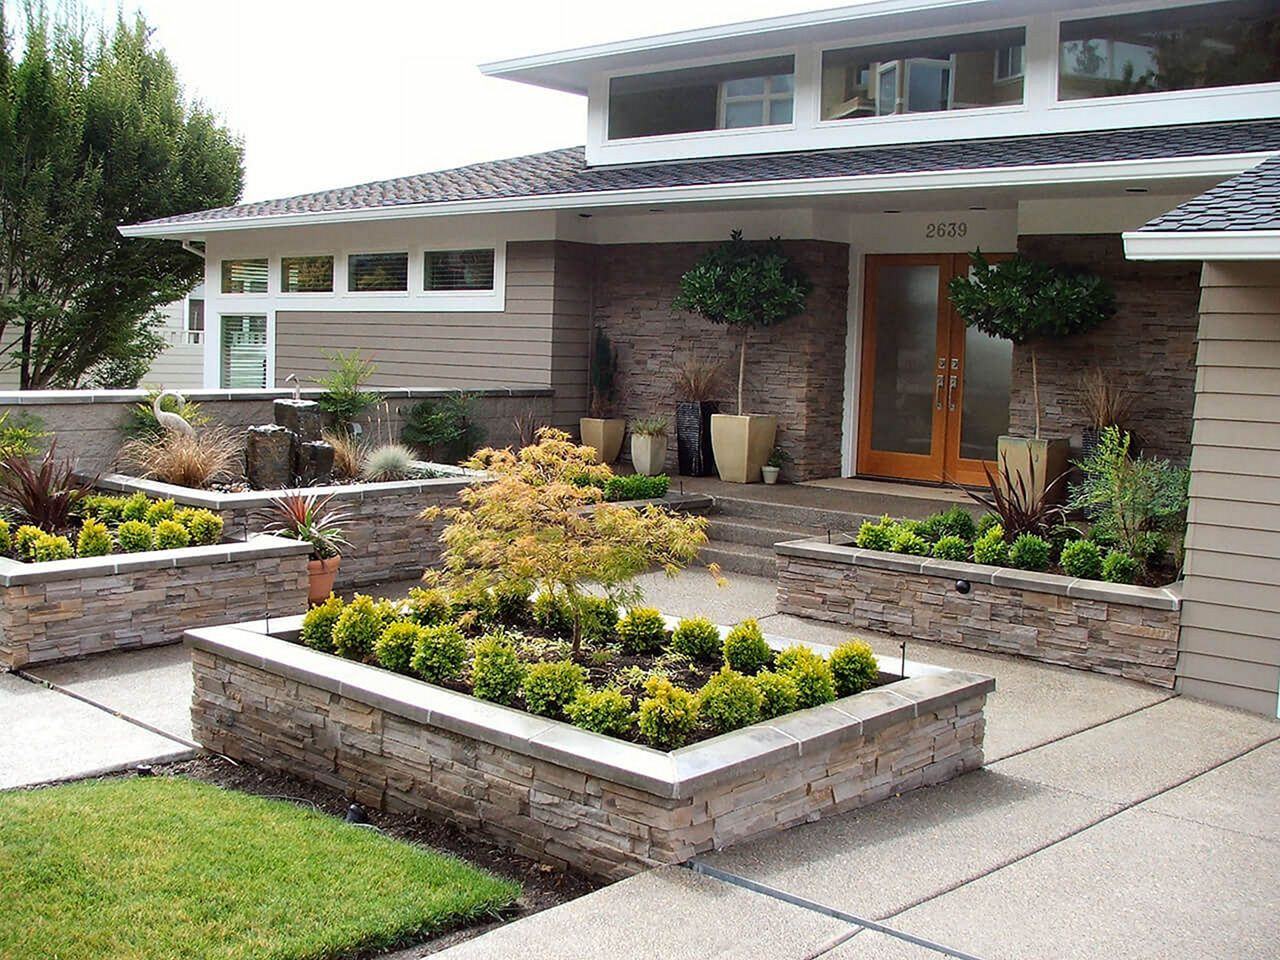 Landscape Design Front Yards  25 Simple Front Yard Landscaping Ideas That You Need To